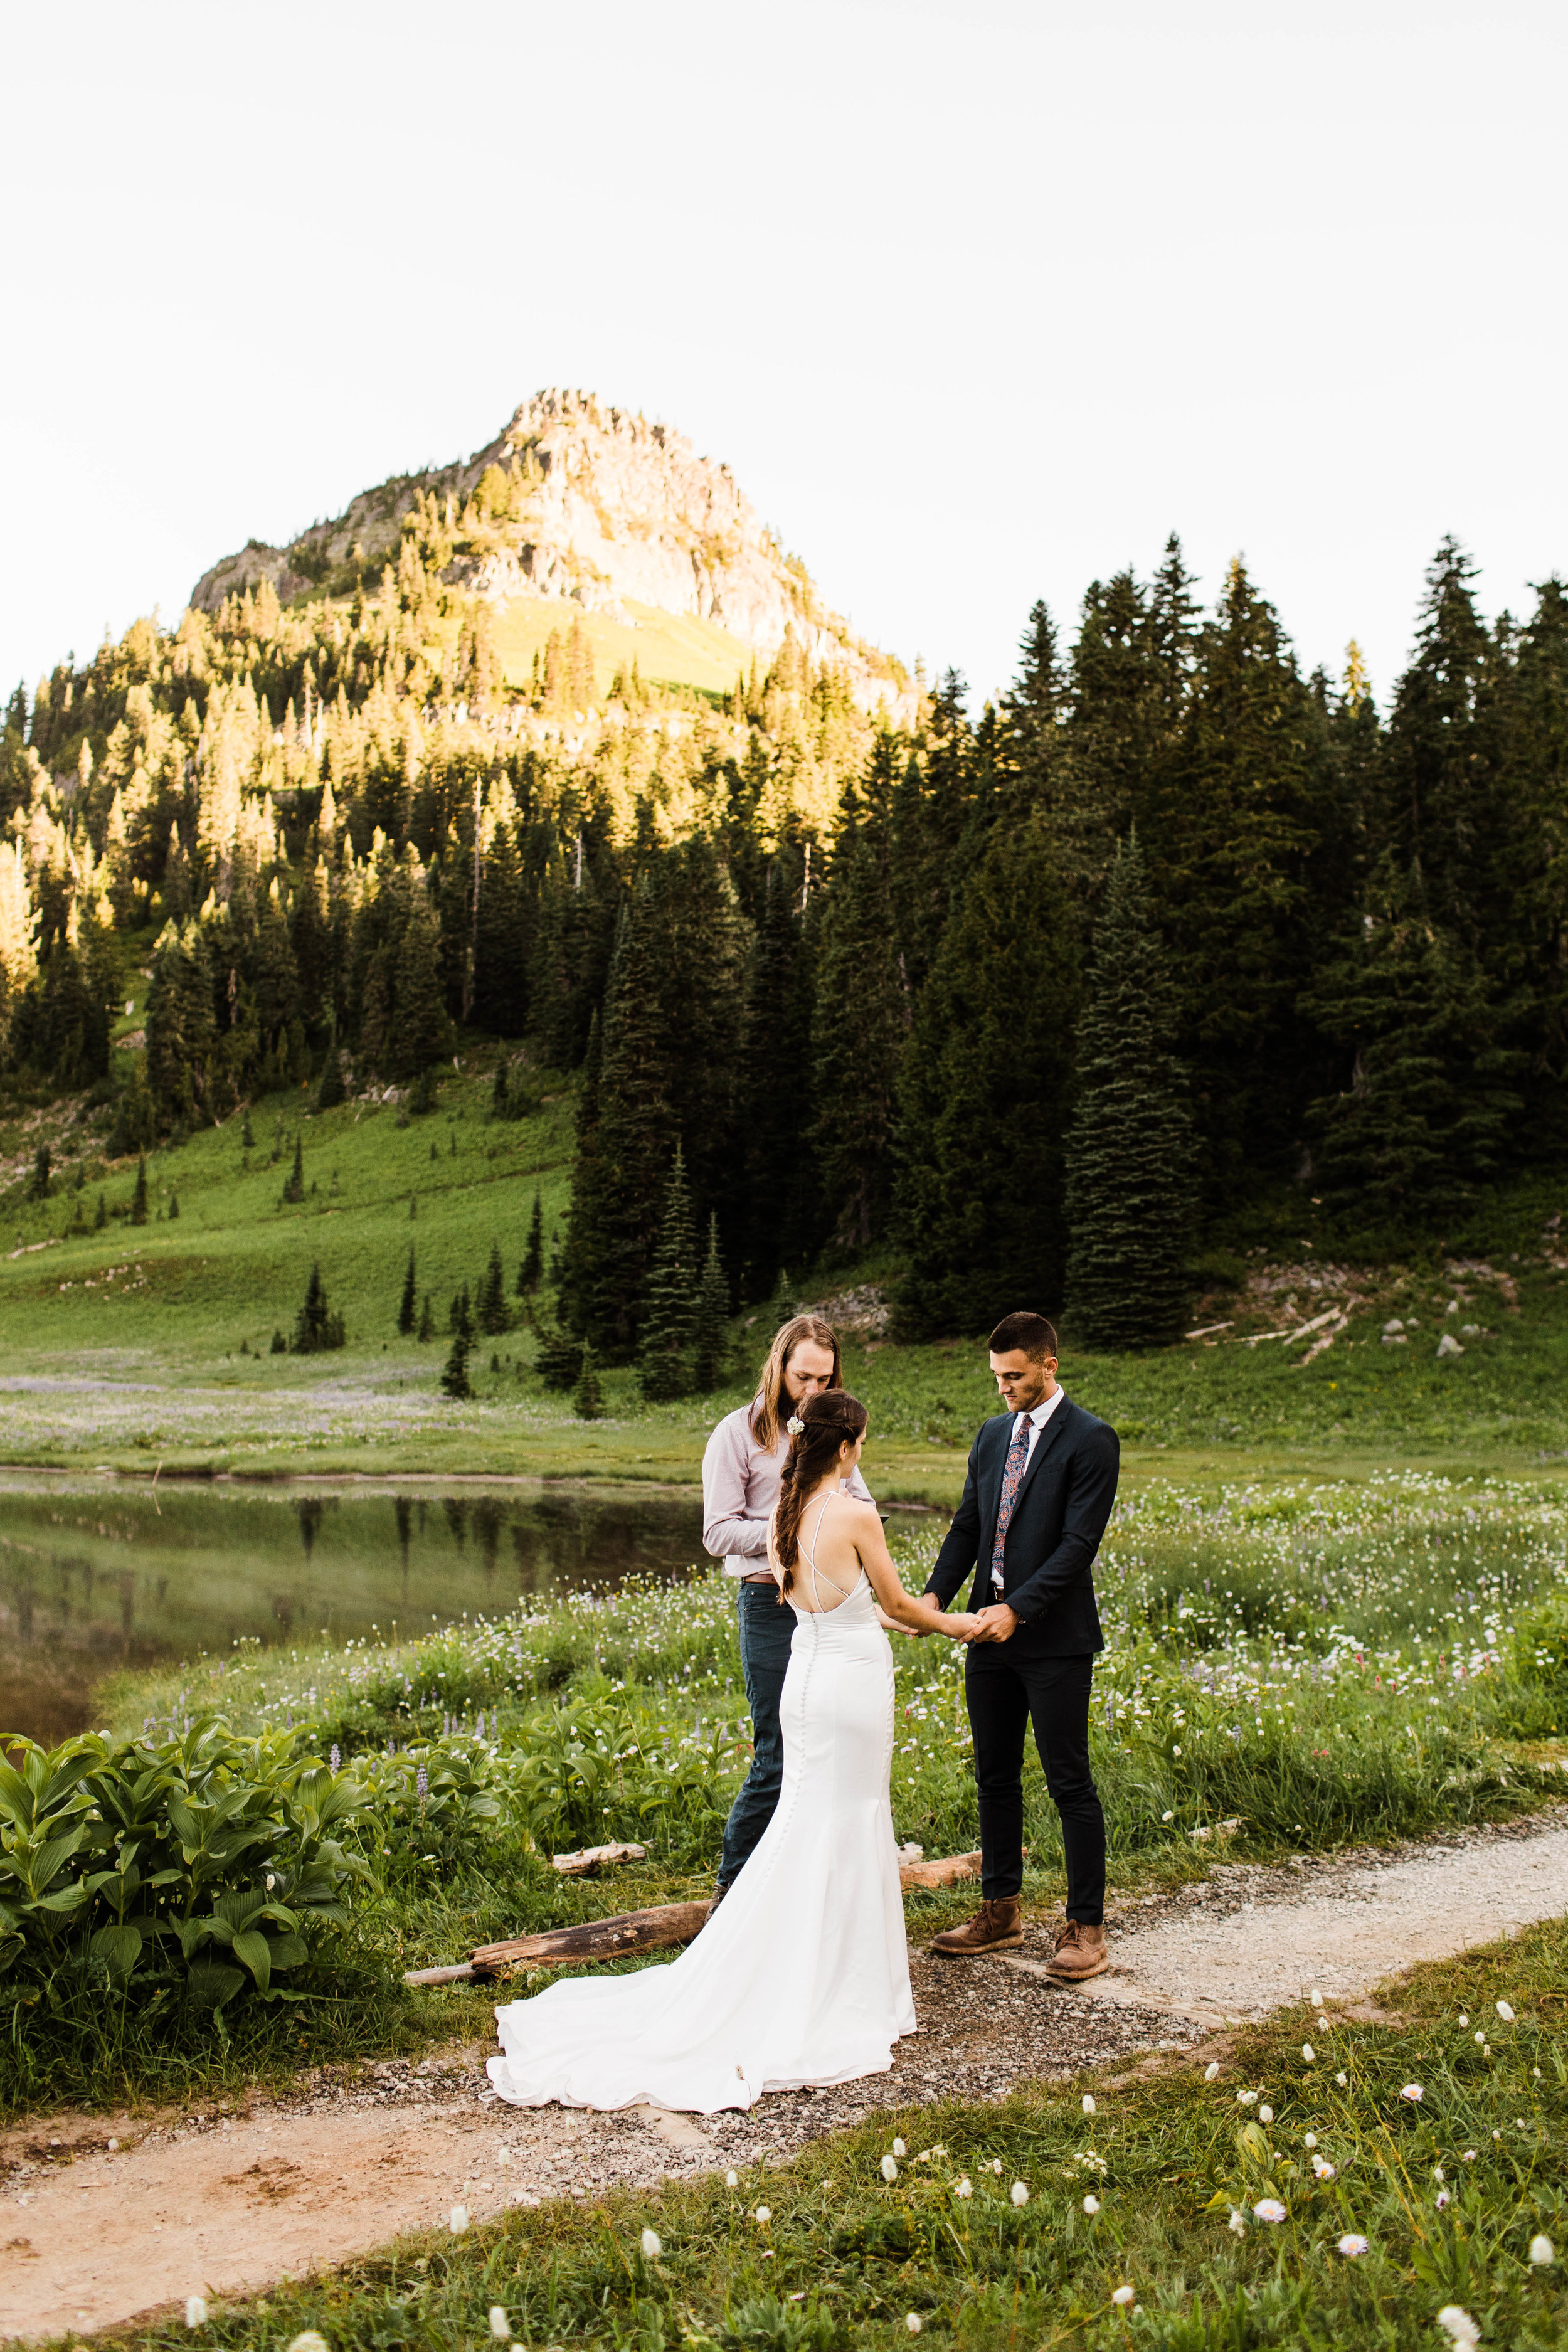 Mount Rainier National Park elopement ceremony in the mountains | Seattle Washington adventure wedding photographers